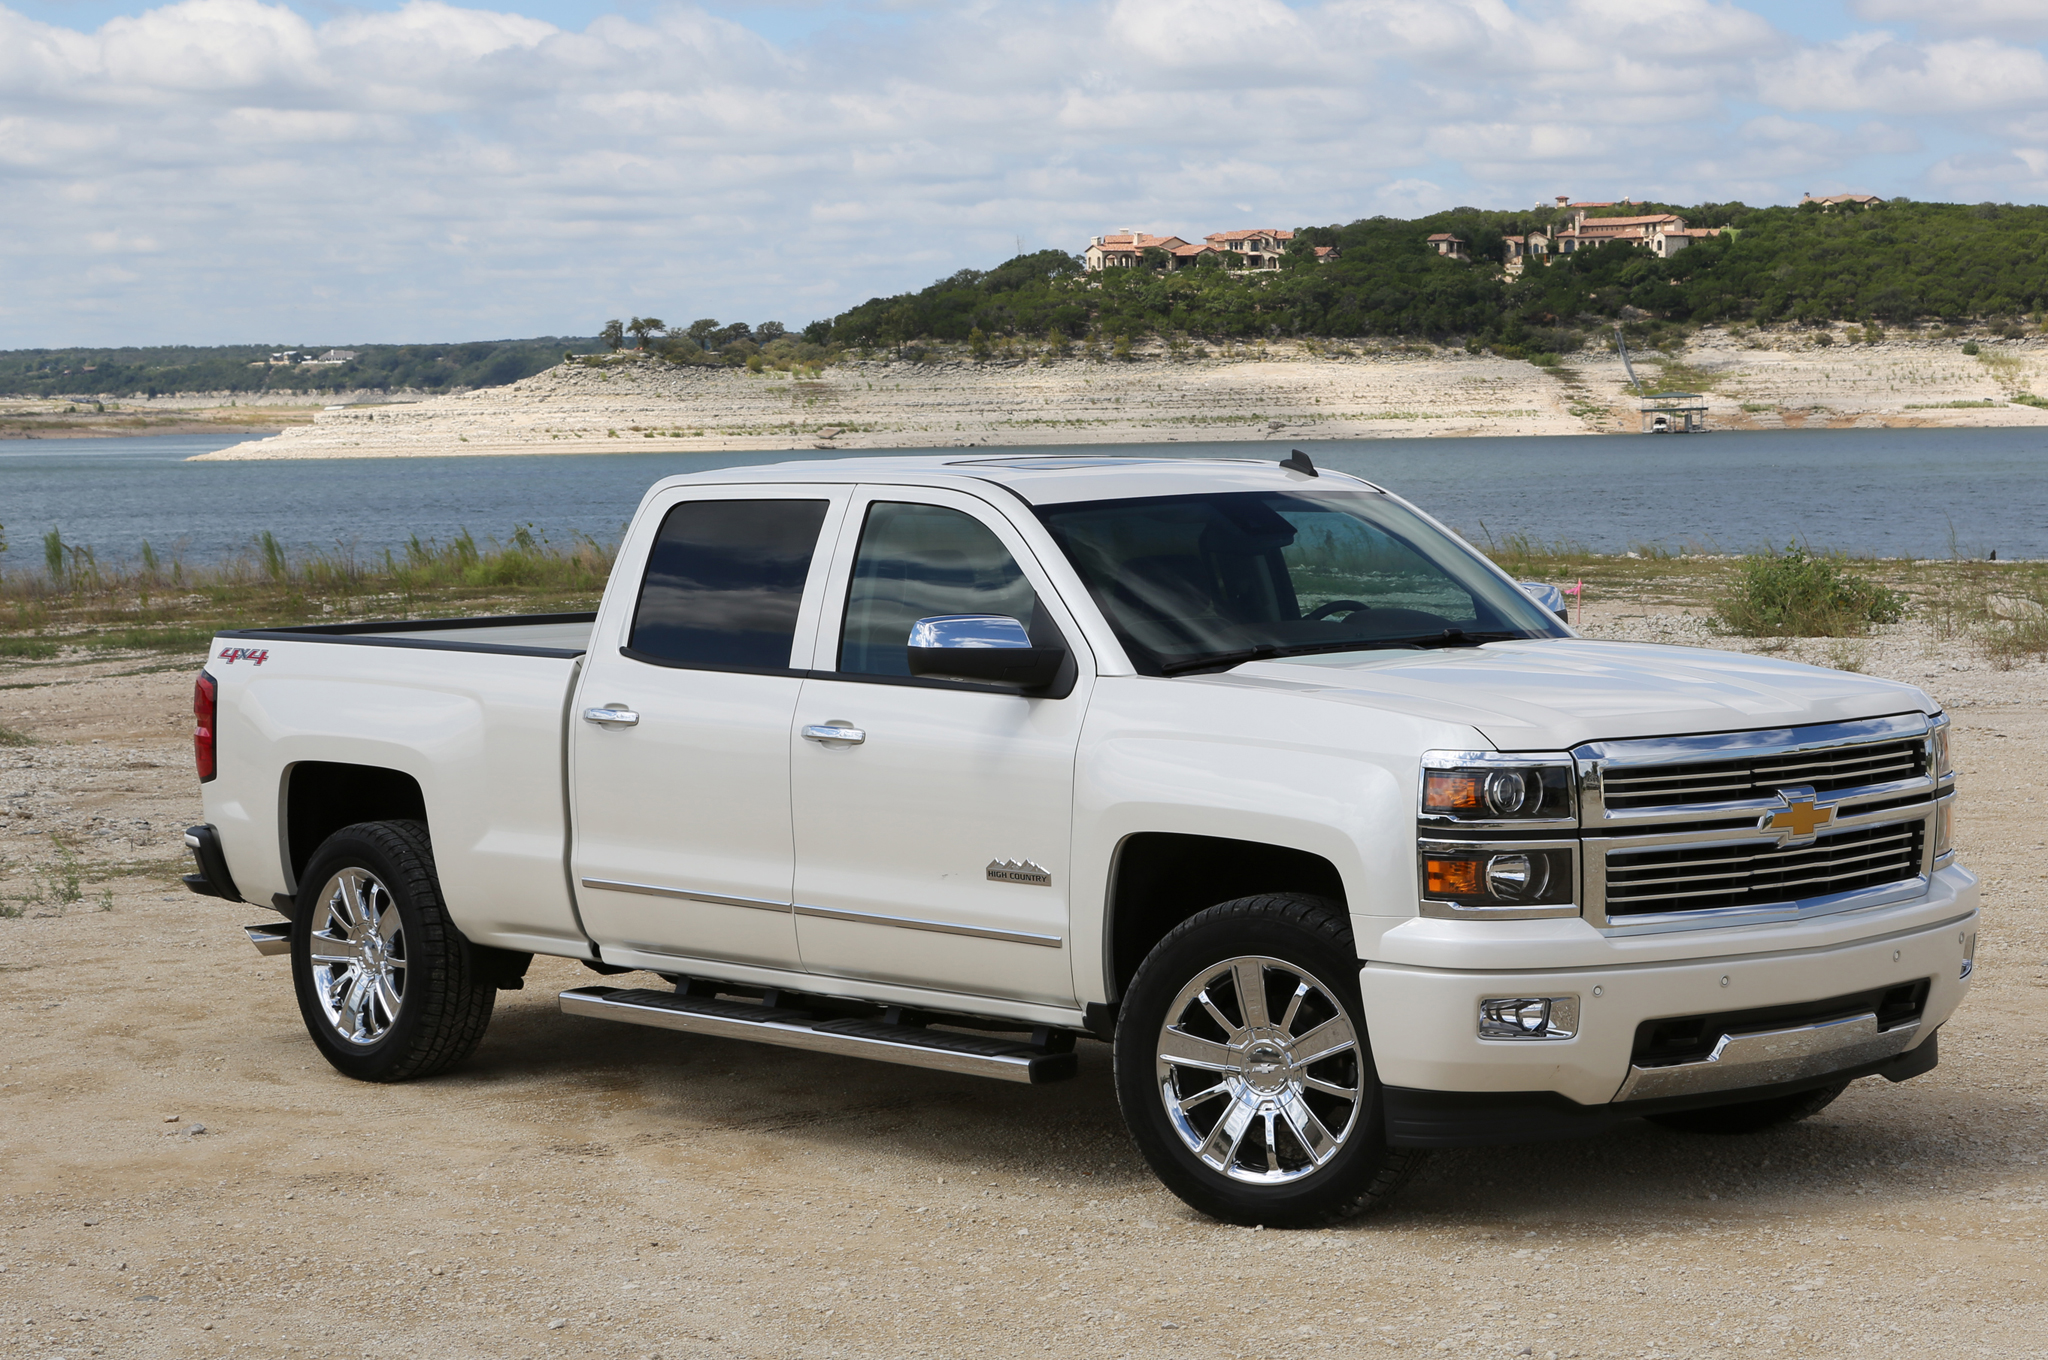 sale sherwood vehicles park for black ab performance htm chevy chevrolet in reaper widow